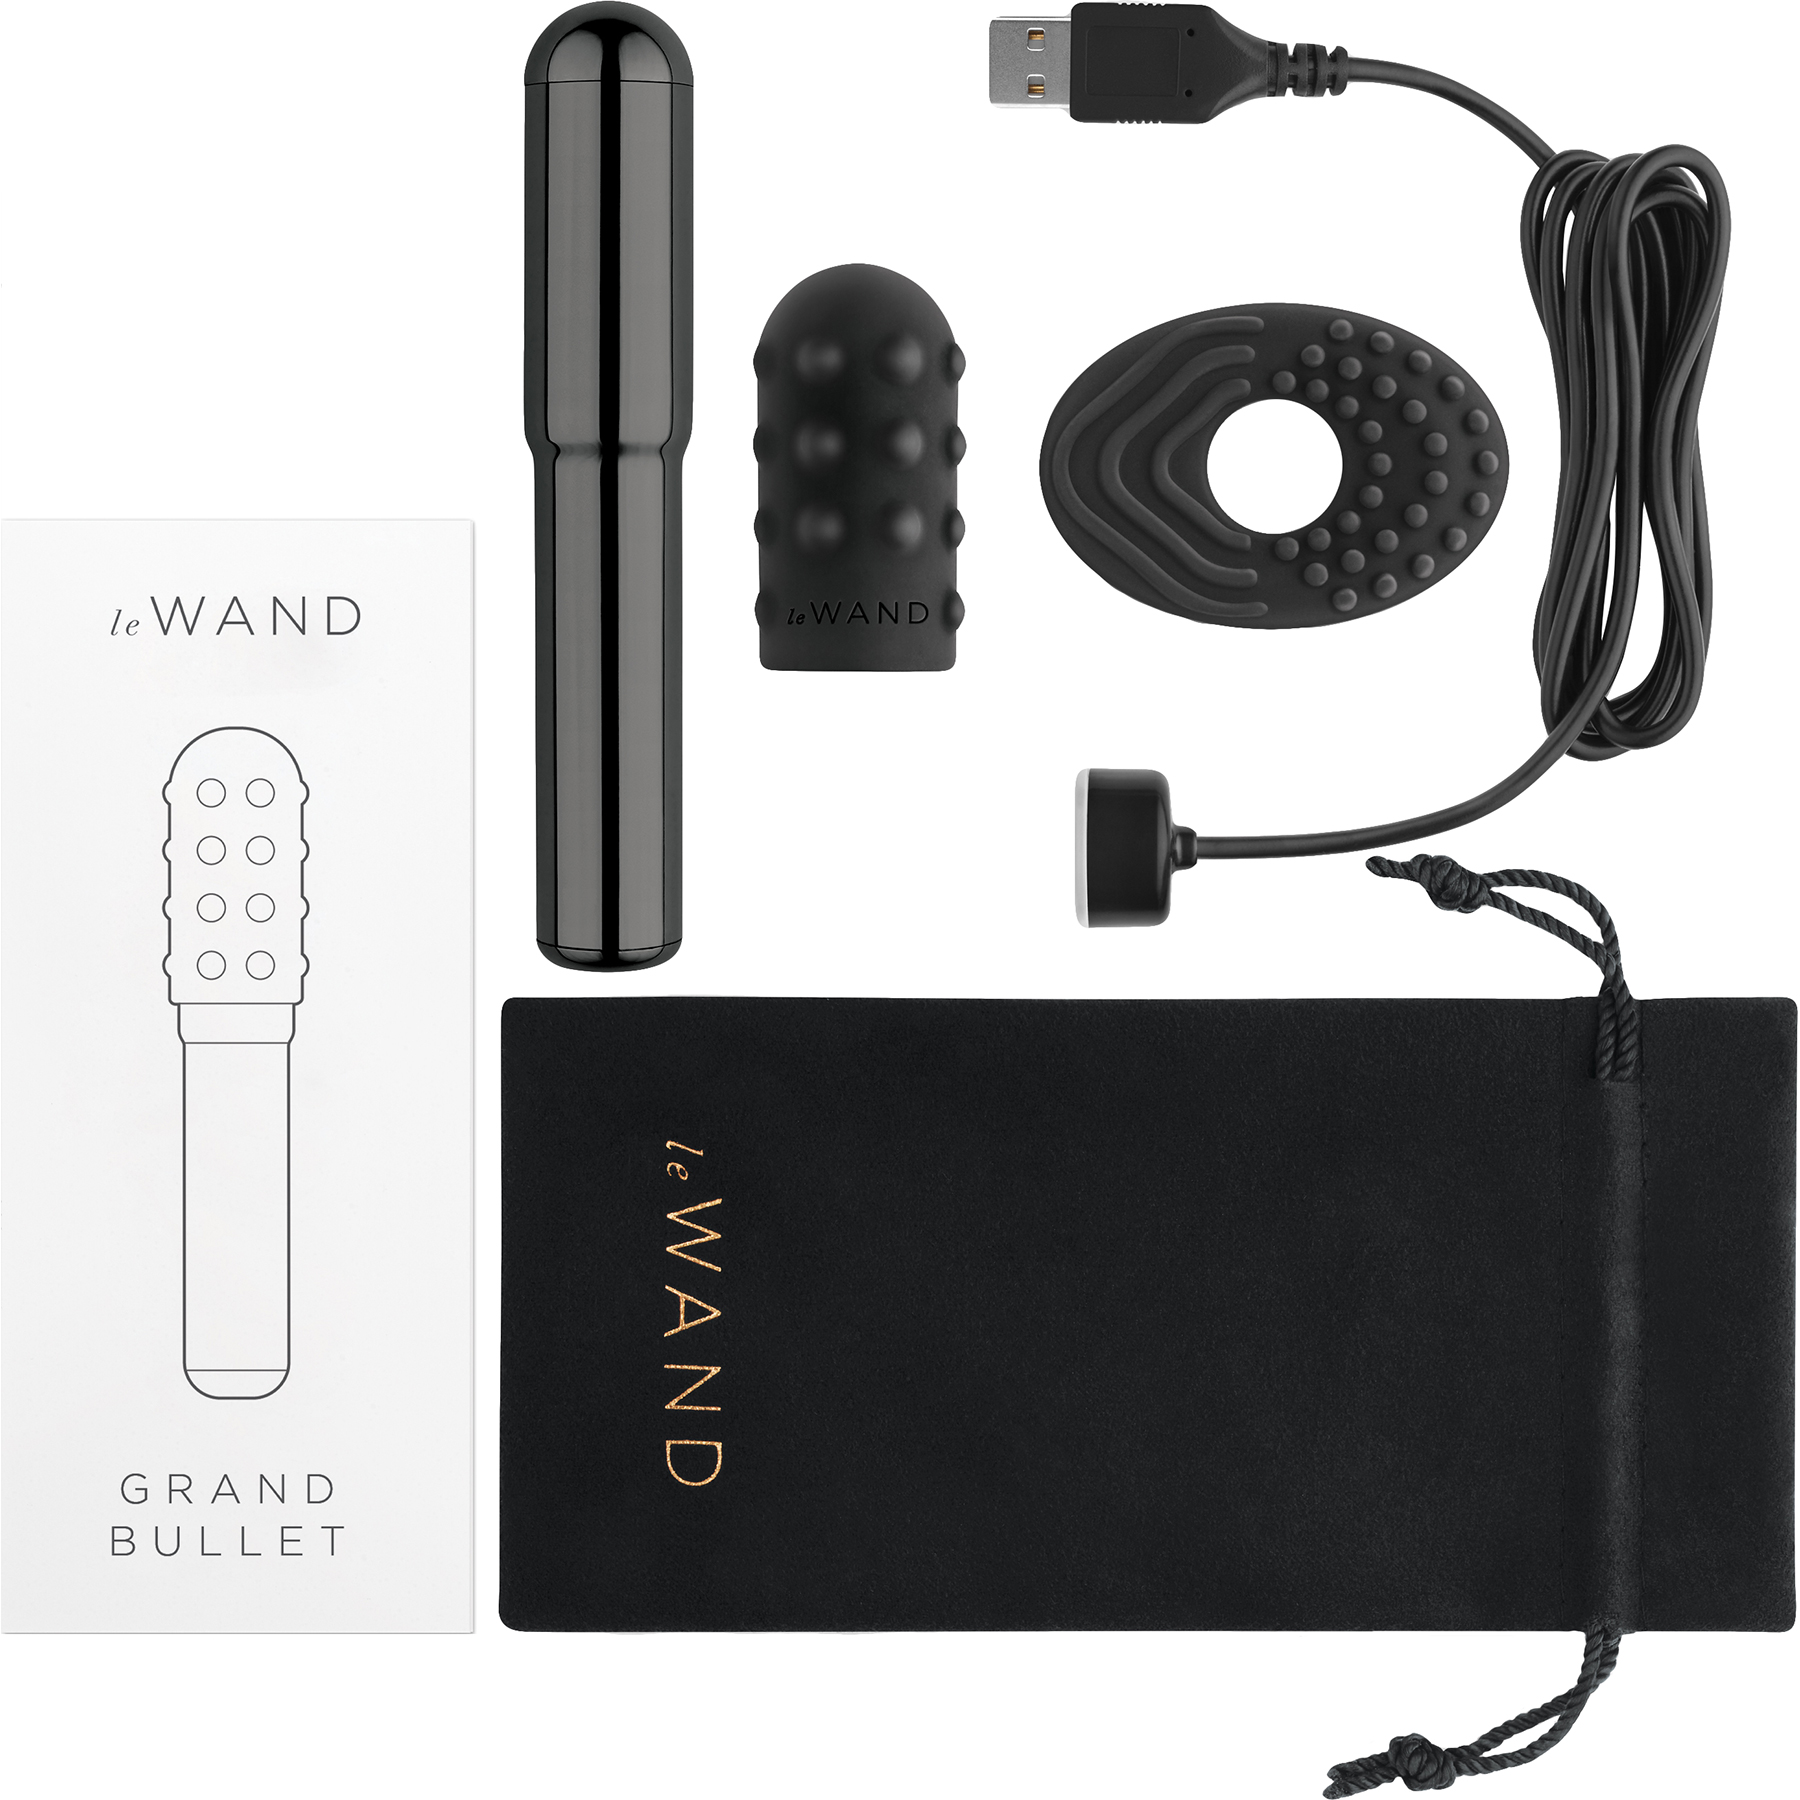 Le Wand Grand Bullet Powerful Waterproof Rechargeable Vibrator - Box Contents